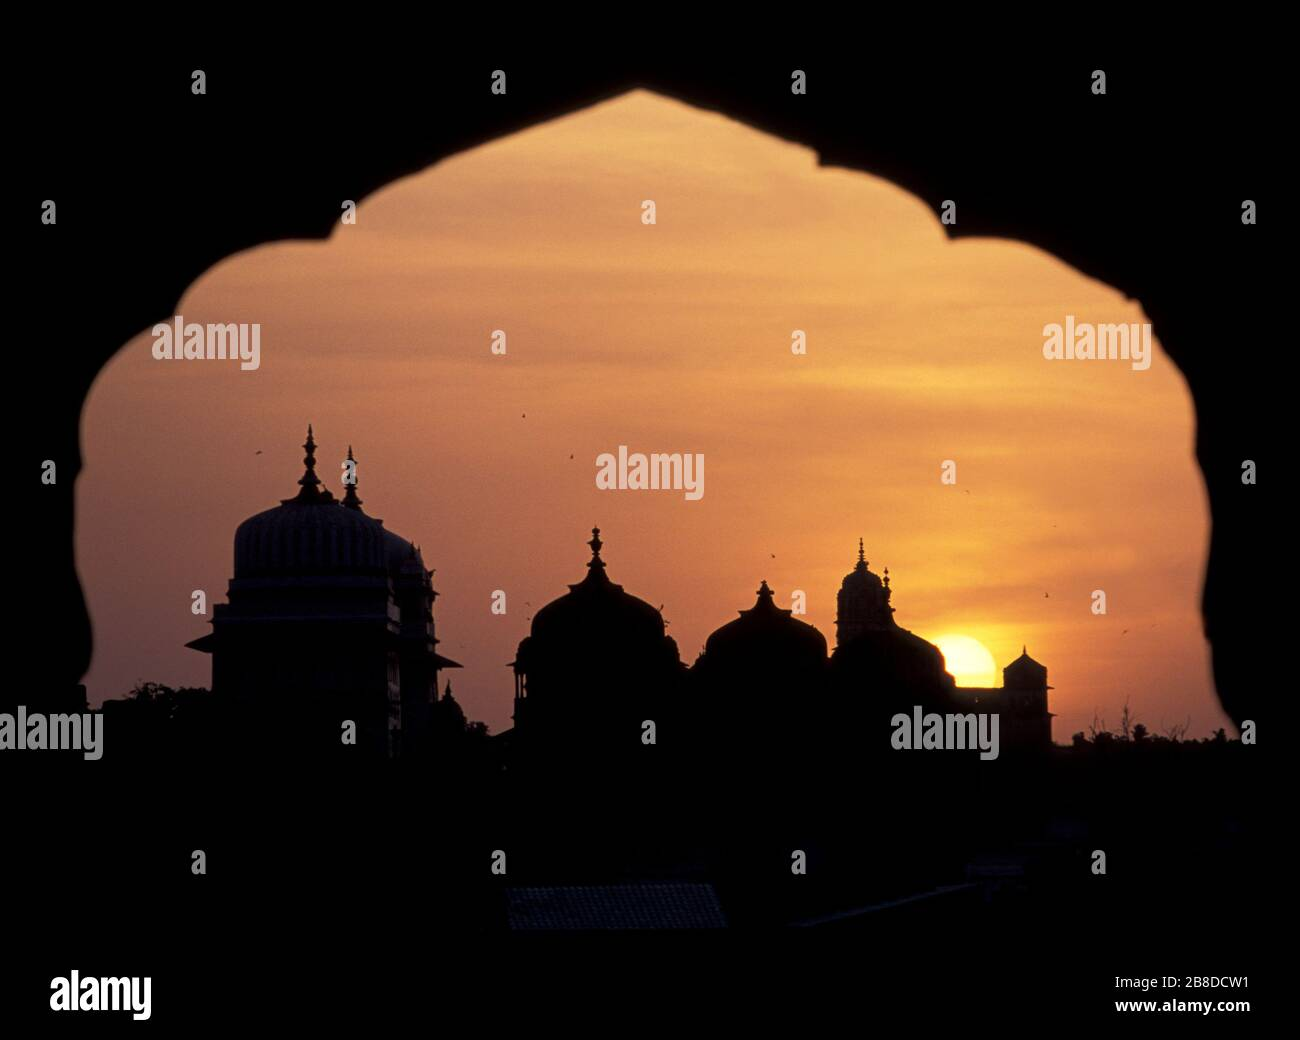 Incredible view of Orchha temples at sunset from Sheesh Mahal Palace Orchha Madhya Pradesh India Stock Photo